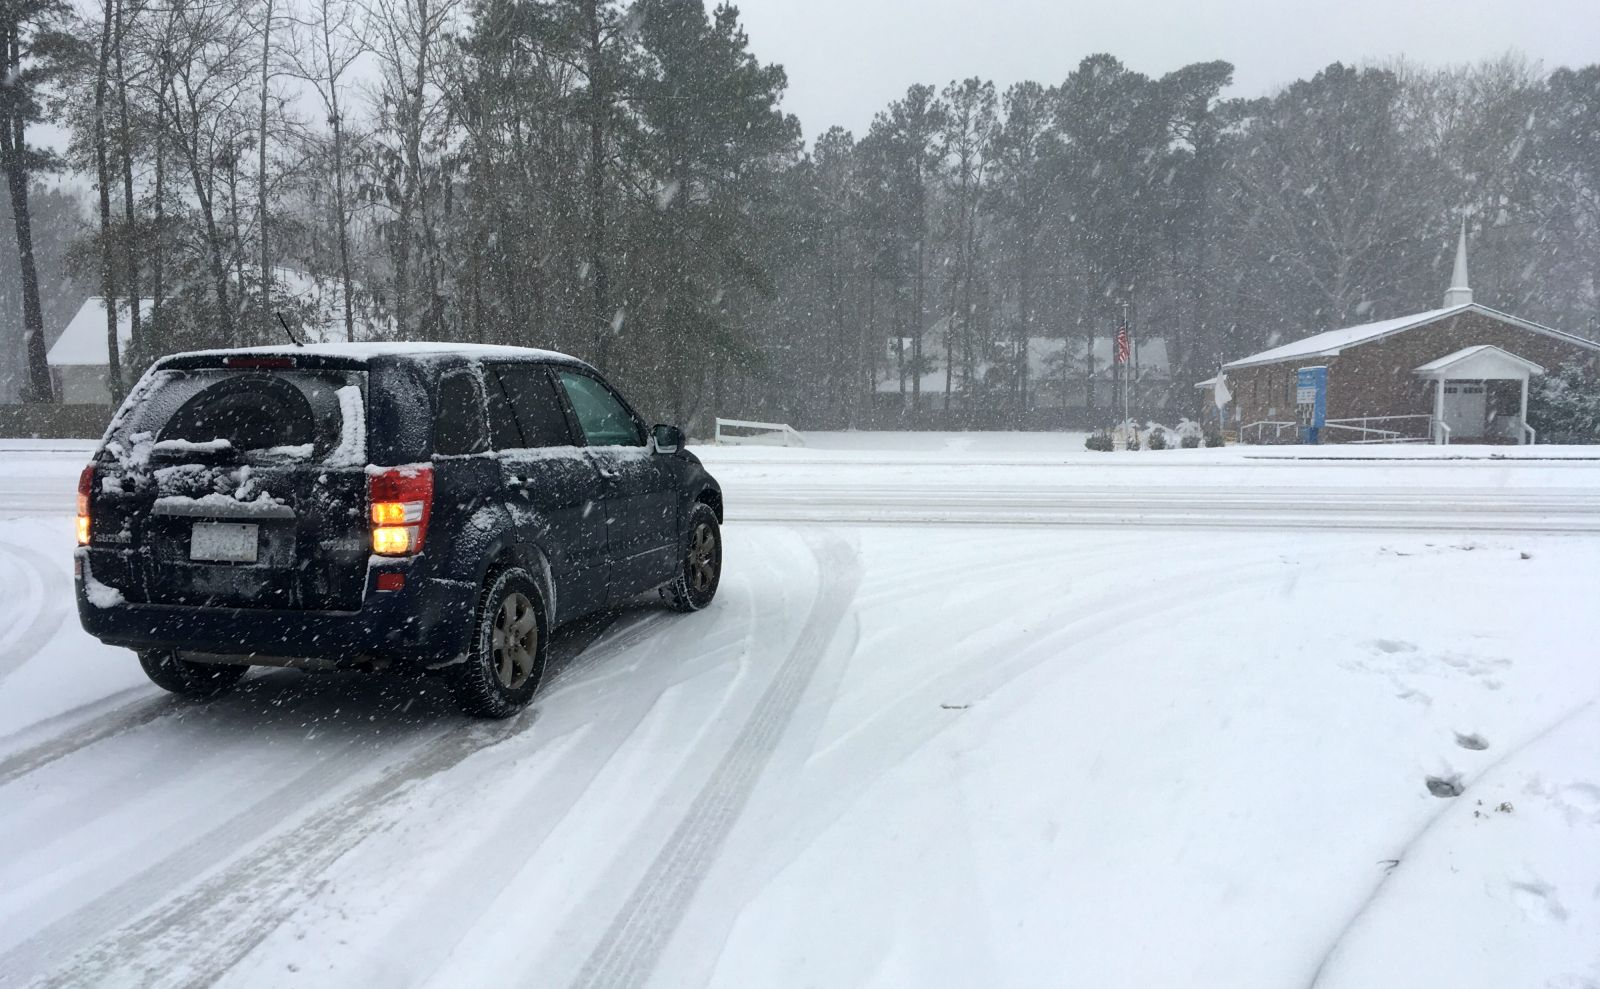 A vehicle tries to pull out onto Bacons Bridge Road in Summerville this afternoon. The typically busy four-lane road was mostly empty as snow continued to fall around the region. (Photo/Andy Owens)